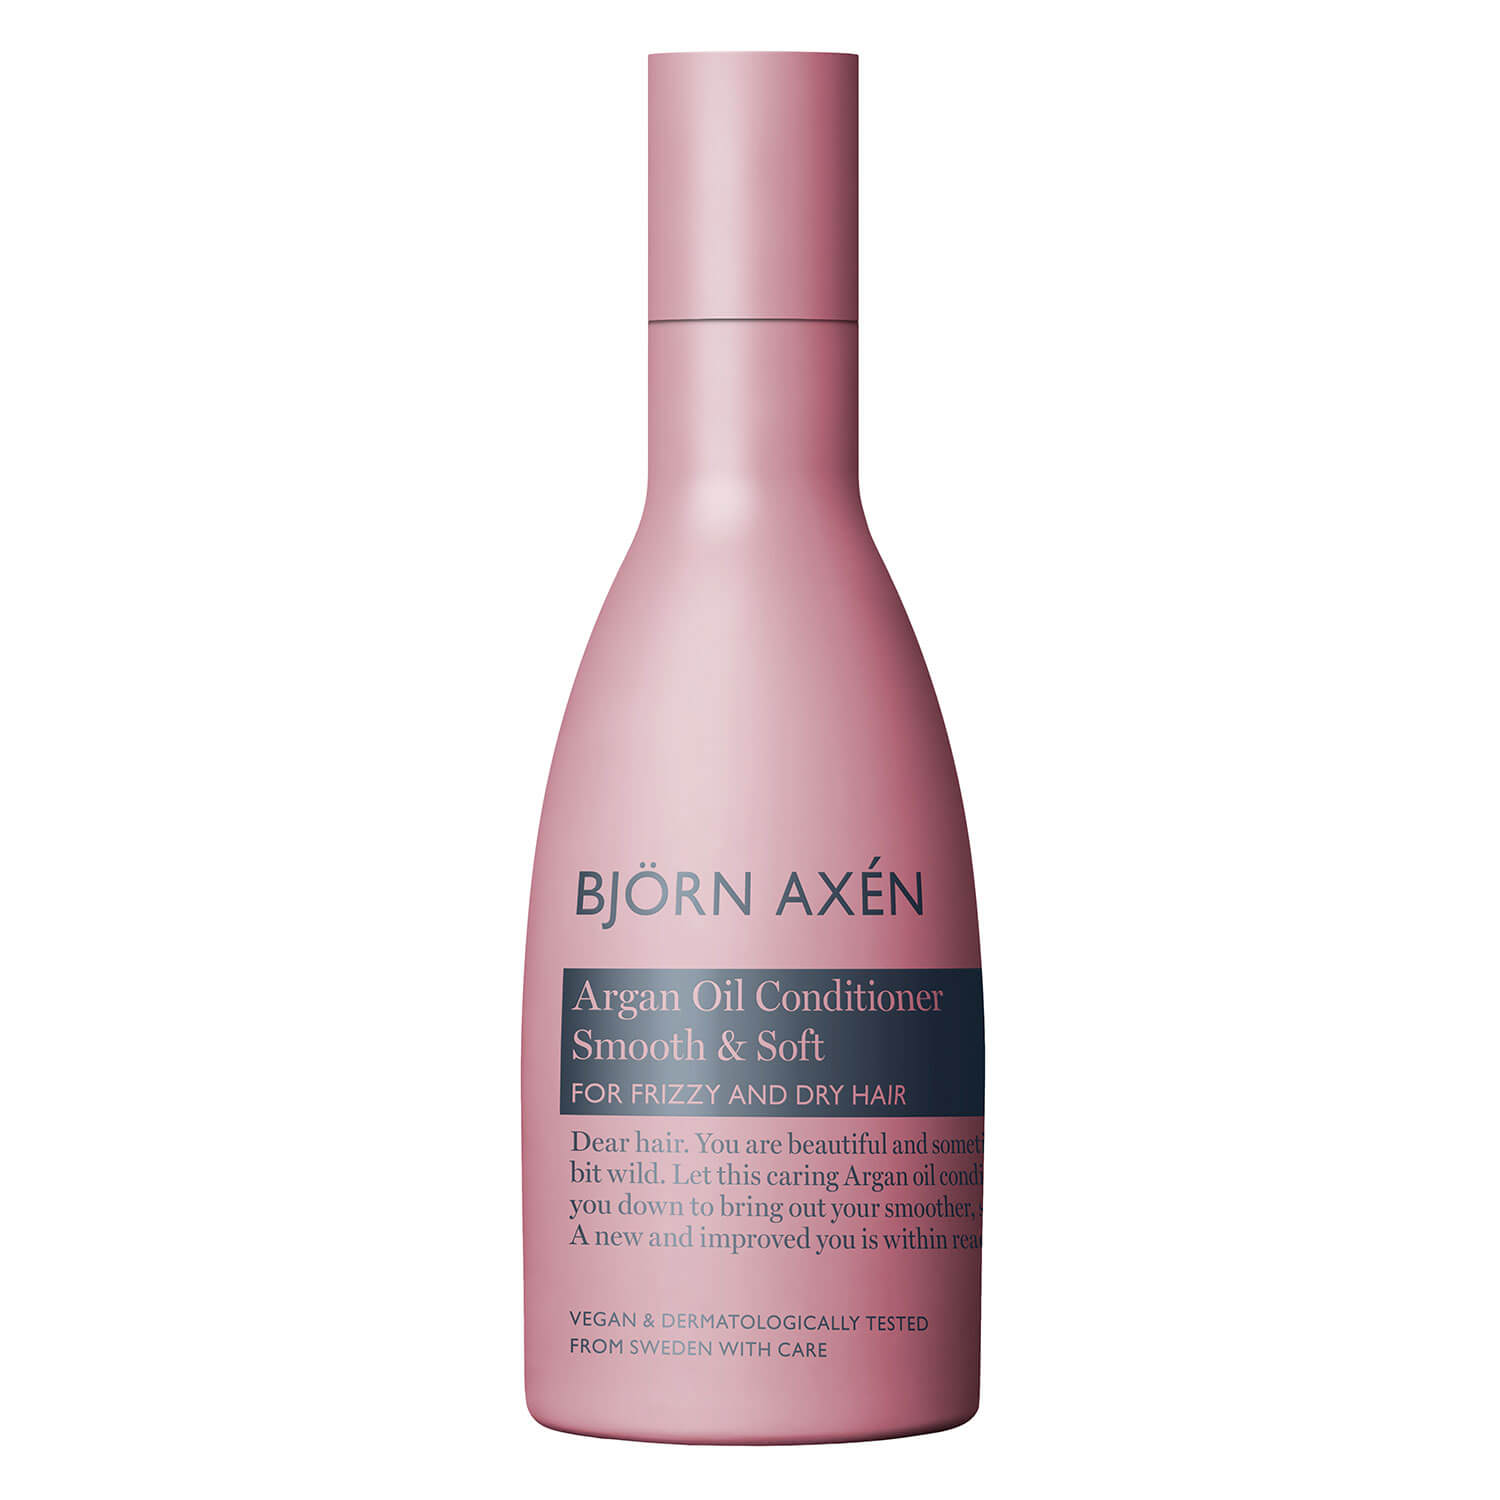 Björn Axén - Argan Oil Conditioner